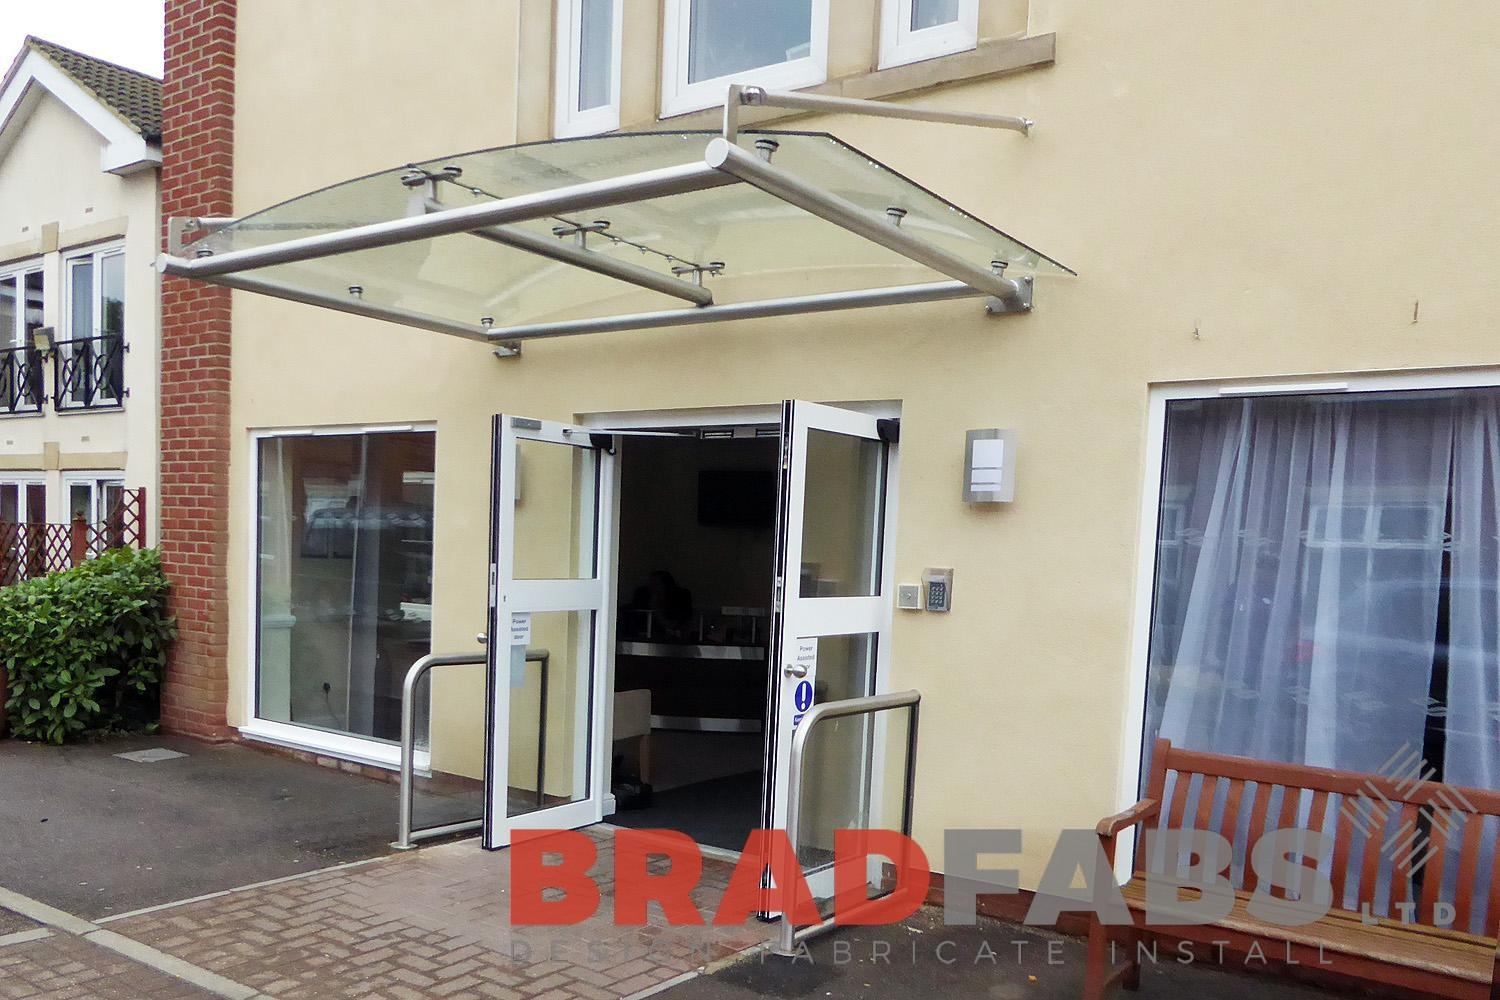 curved glass and steel panel canopy in an entrance installed for nursing home